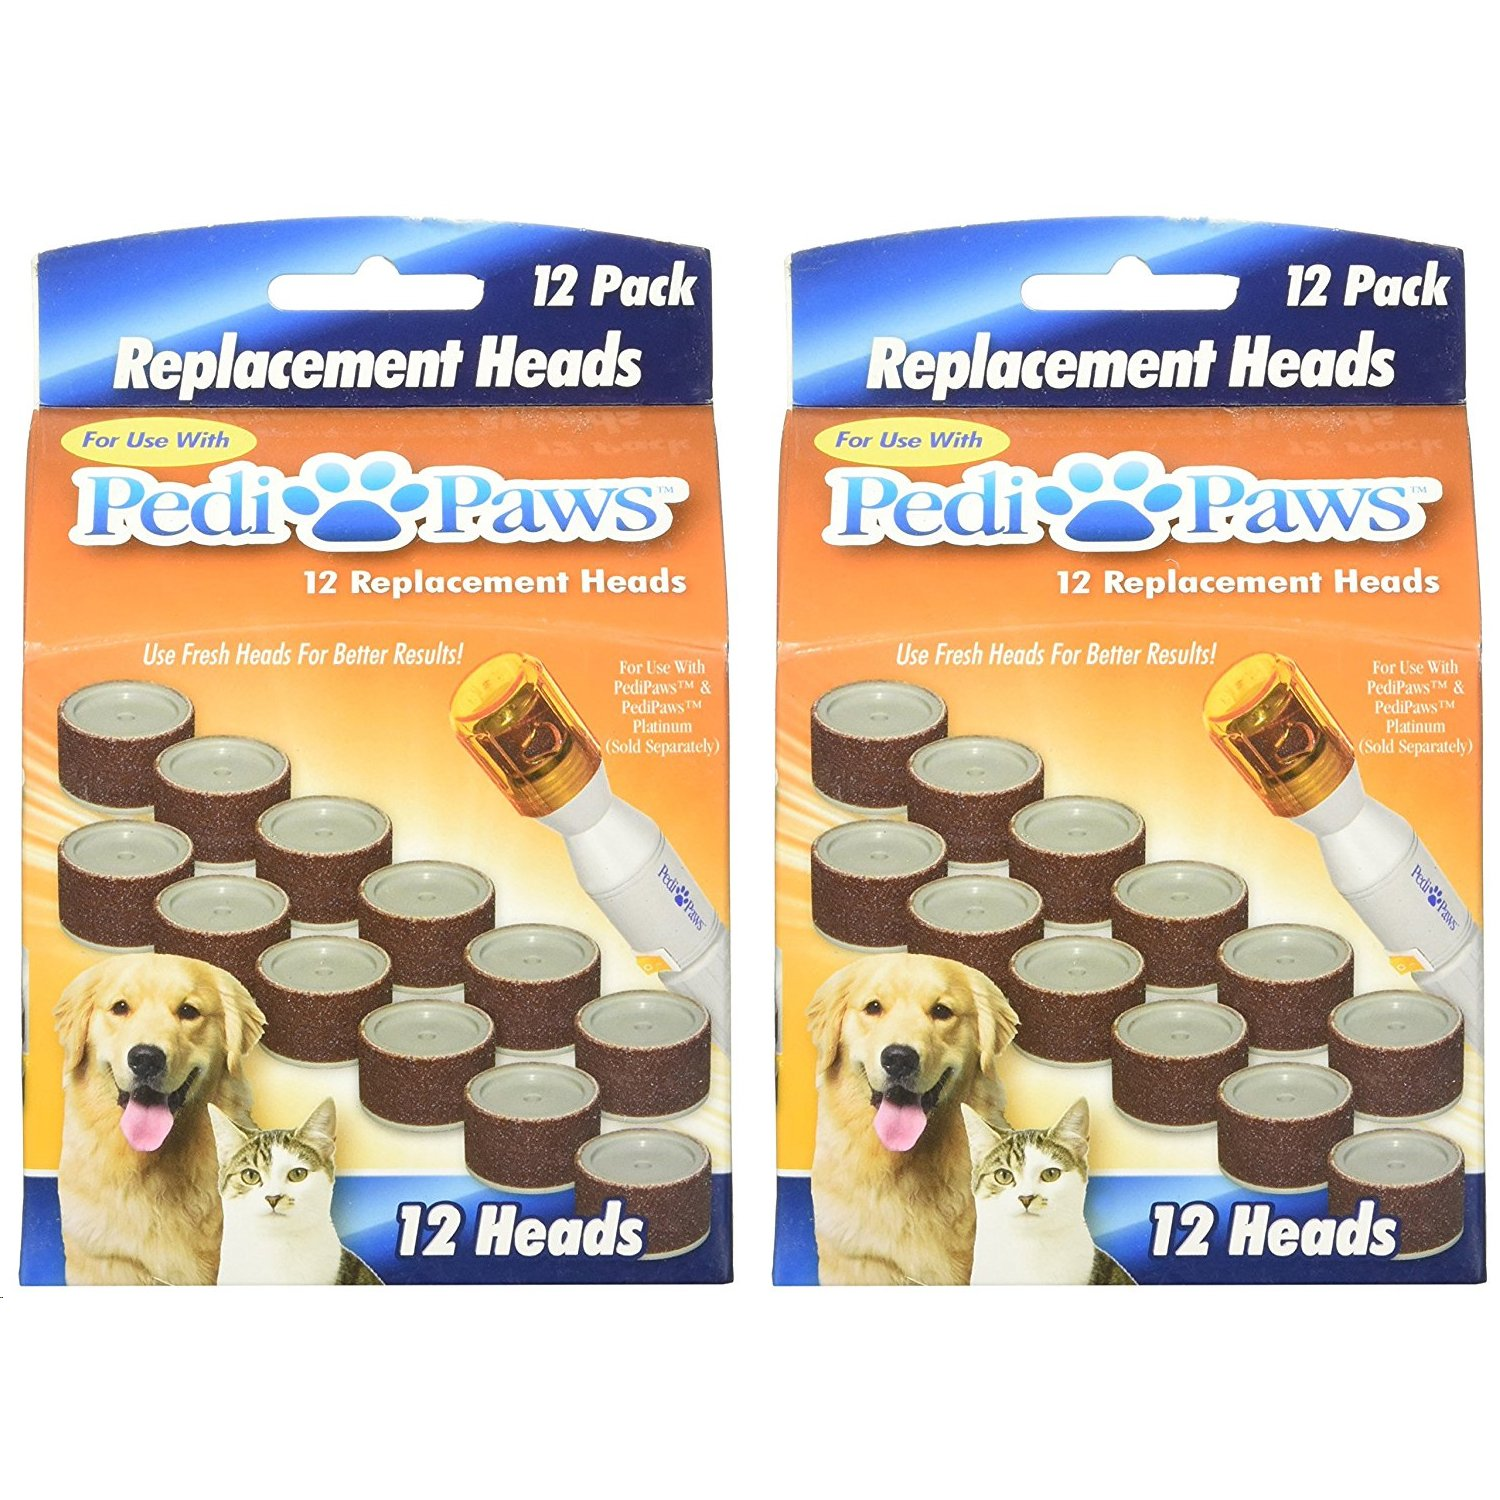 Pedipaws 20 Pack Emery Board Wheels Refill For Pet Nail Trimmer System Telebrands Usa